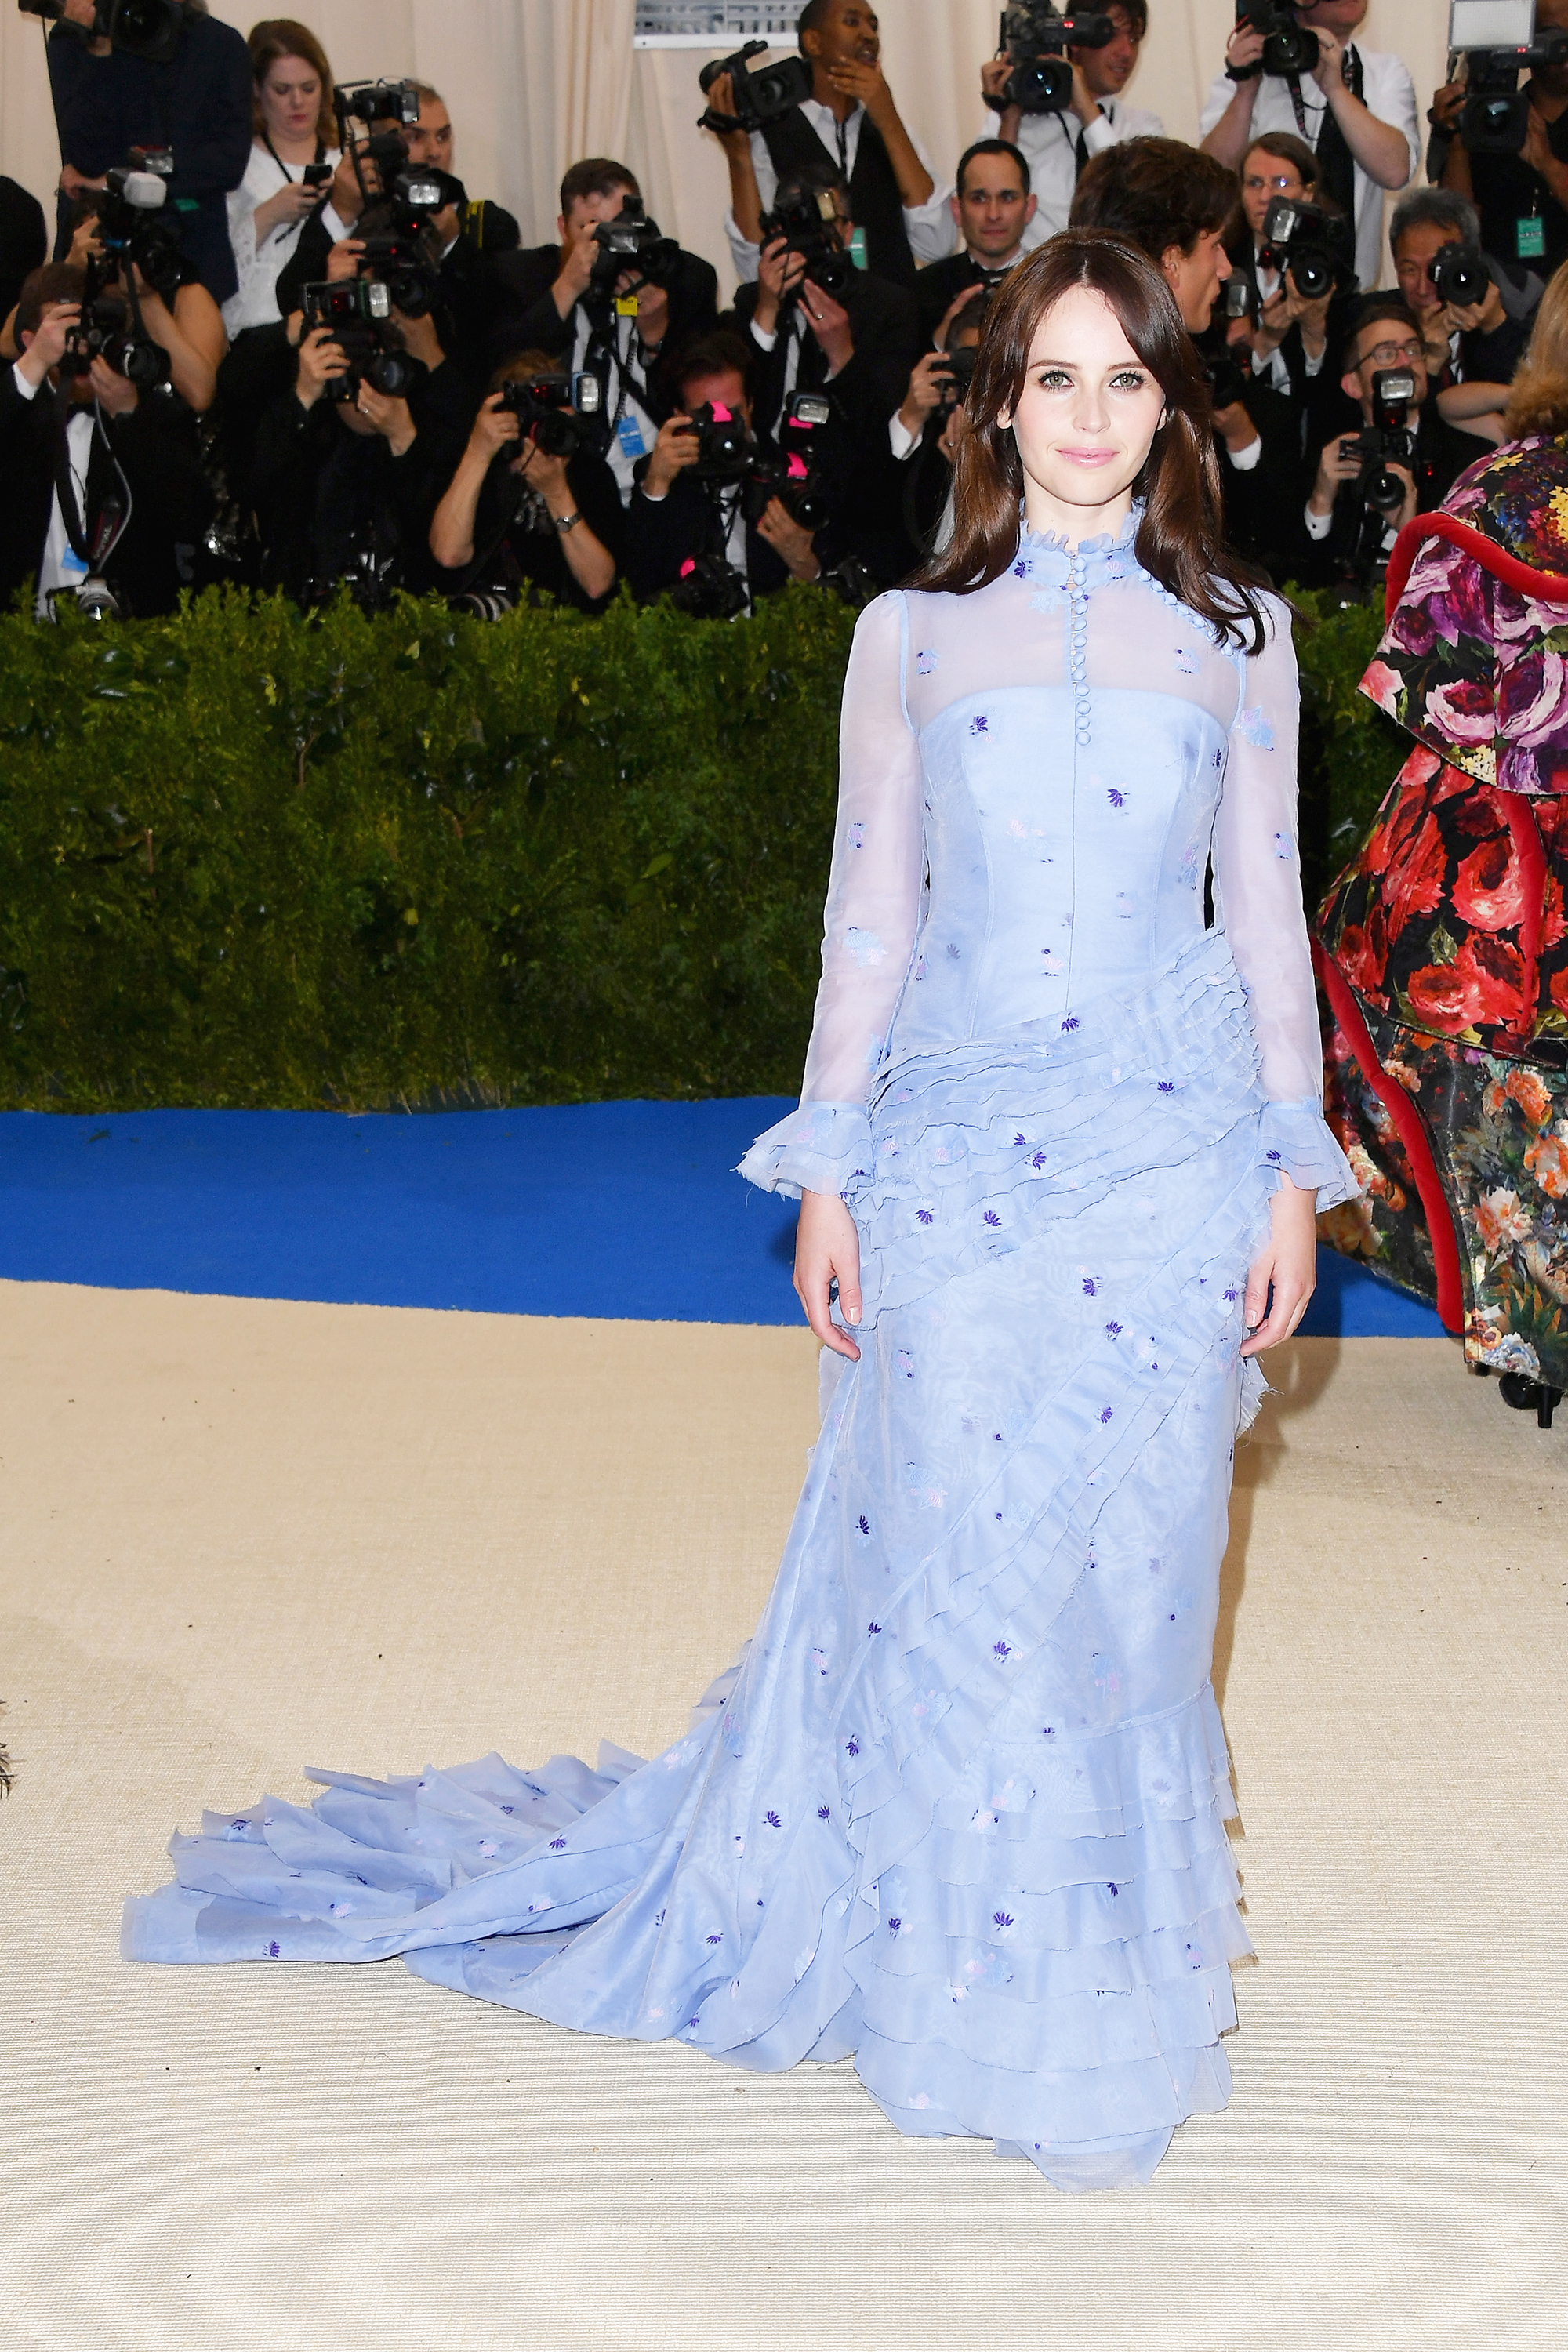 Felicity Jones attends The Metropolitan Museum of Art's Costume Institute benefit gala celebrating the opening of the Rei Kawakubo/Comme des Garçons: Art of the In-Between exhibition in New York City, on May 1, 2017.